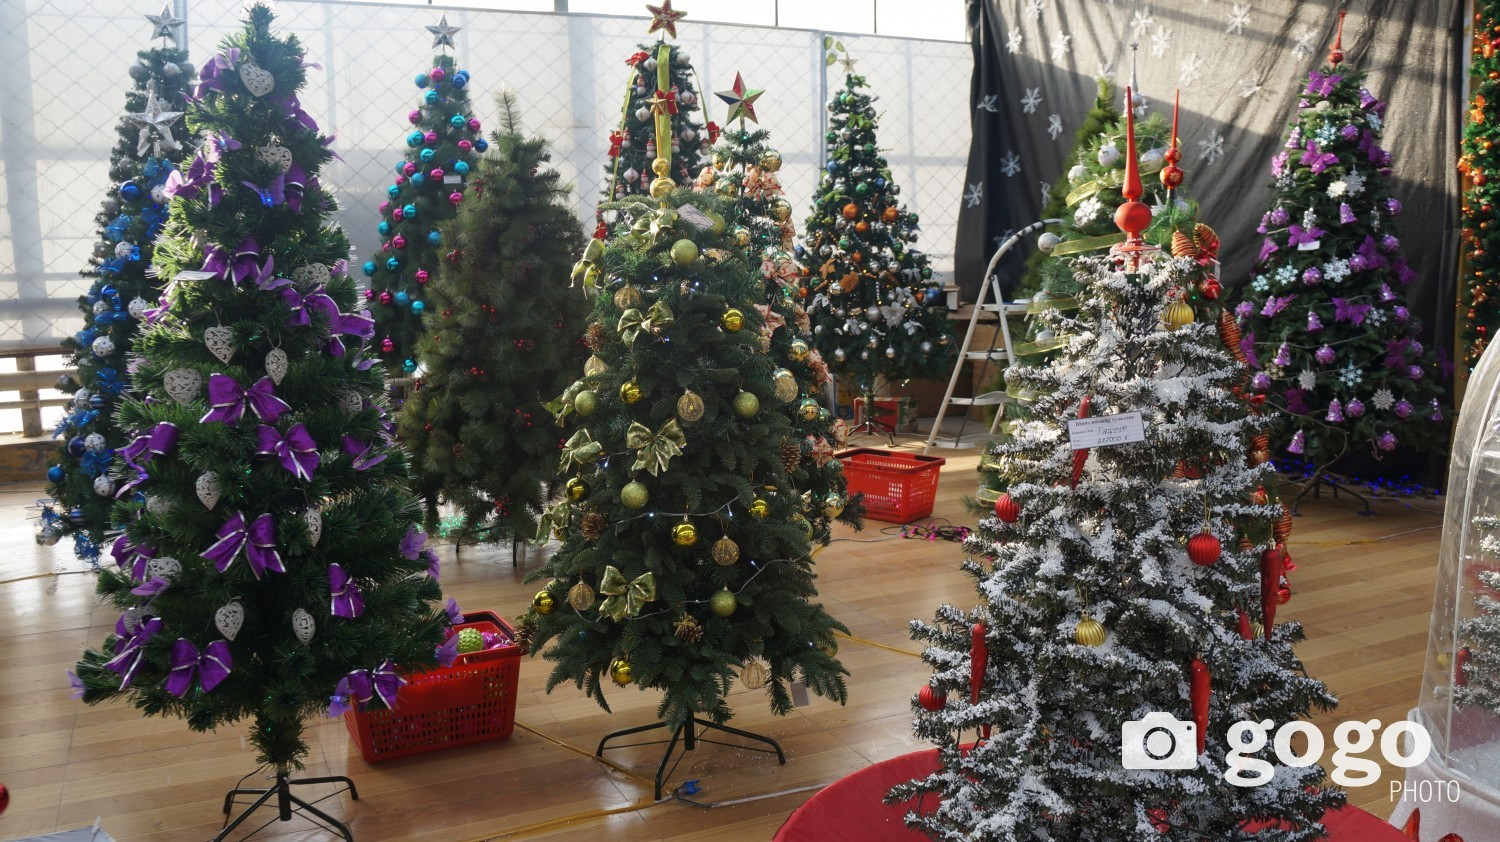 Prices for the tree is depending on its size, design and light. Tree with the height of 1.2 m is at MNT 38.950-108.000. Tree with the height of 1.5 m is at MNT 120.900-155.000. Tree with the height of 1.8 m is at MNT 125.000-250.000. Tree with the height of 2.1 m is at MNT 250.000-295.000. Tree with the height of 2.7 m is at MNT 410.000-495.000.